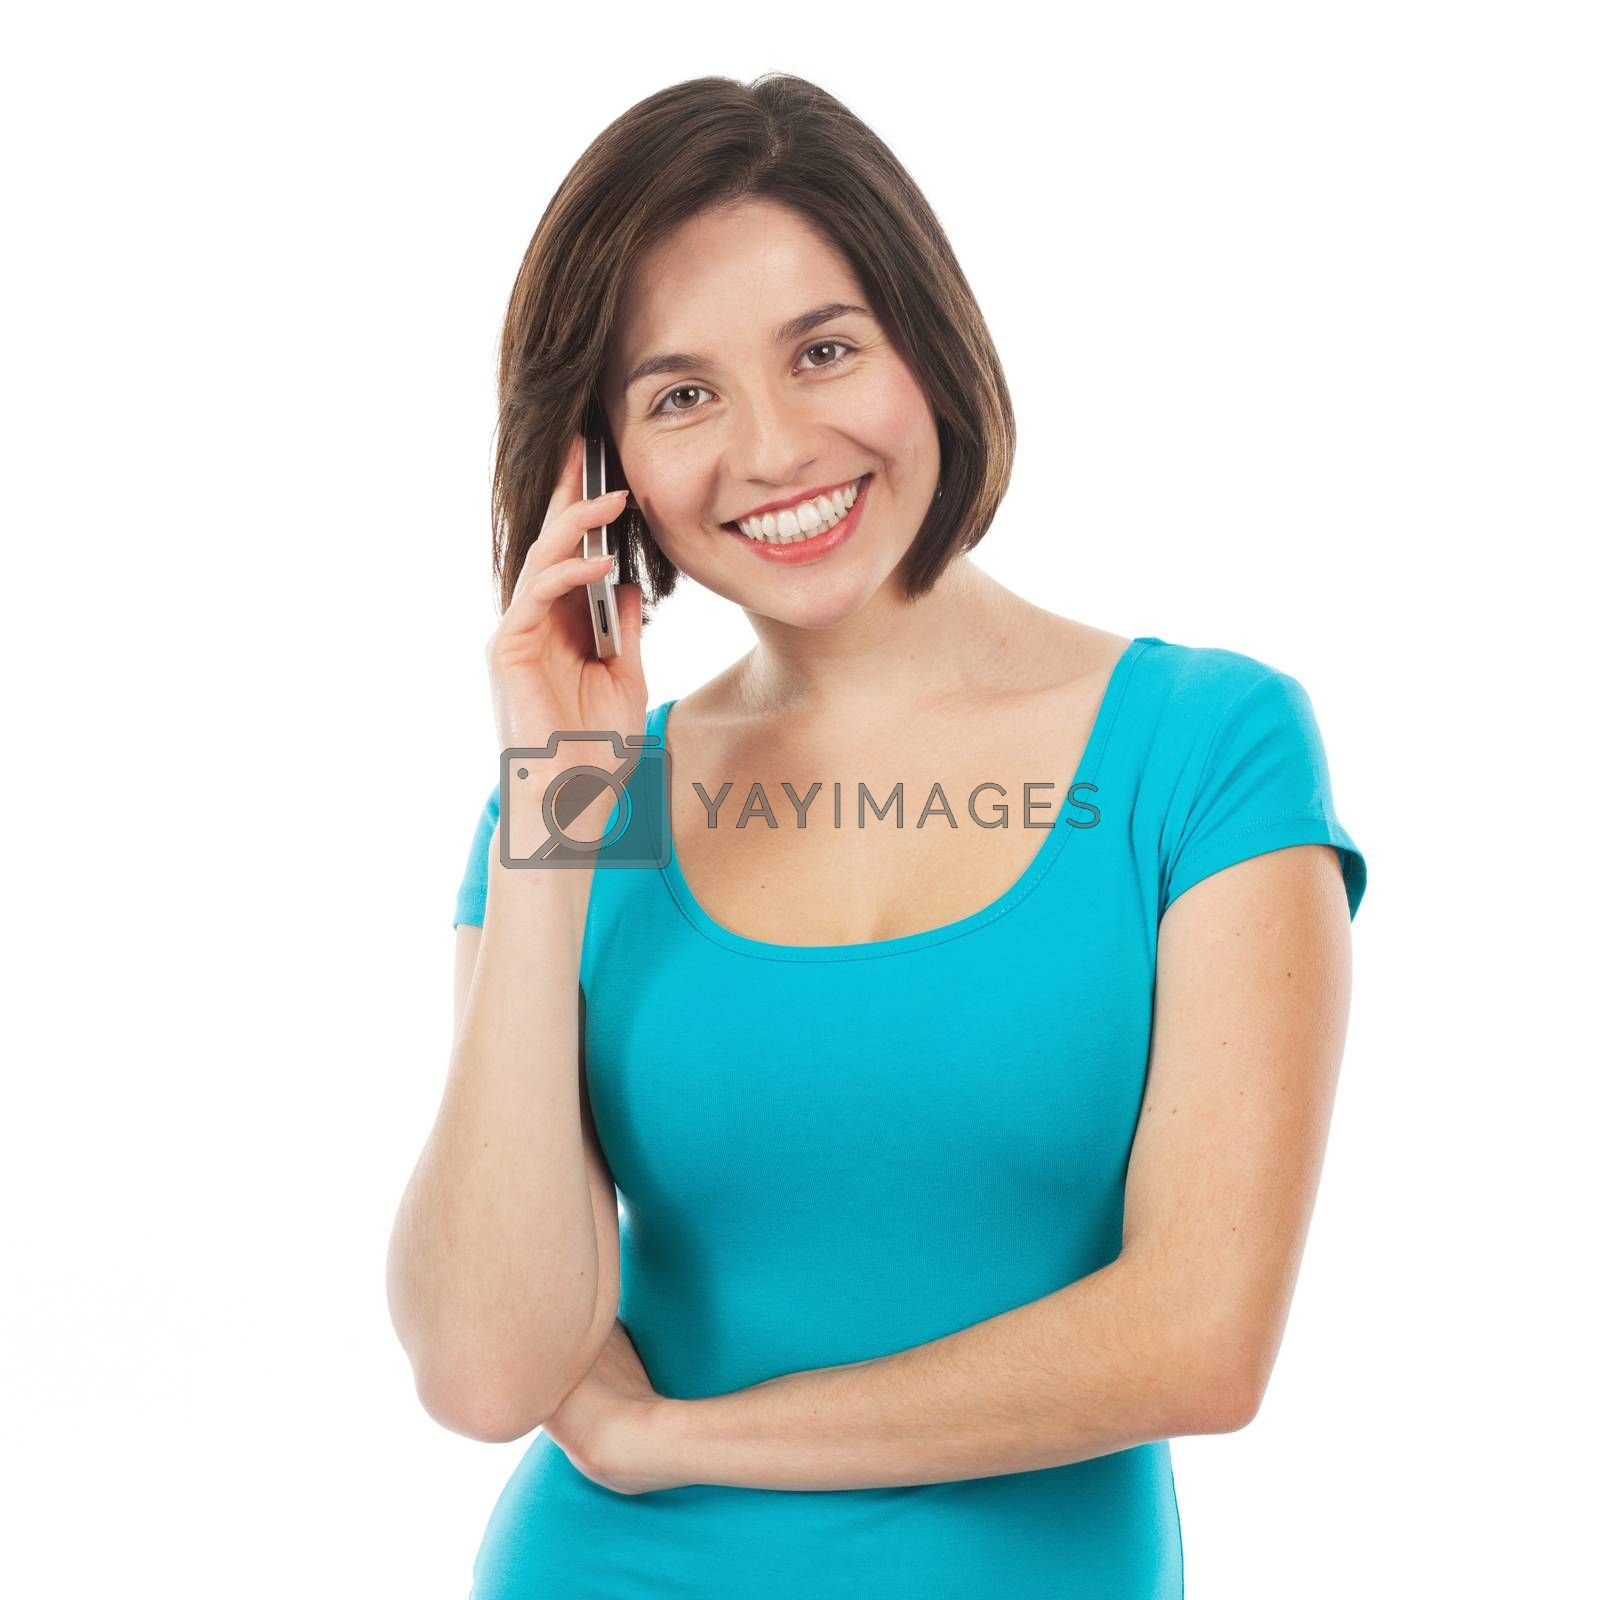 Smiling brunette talking on the phone, isolated on white